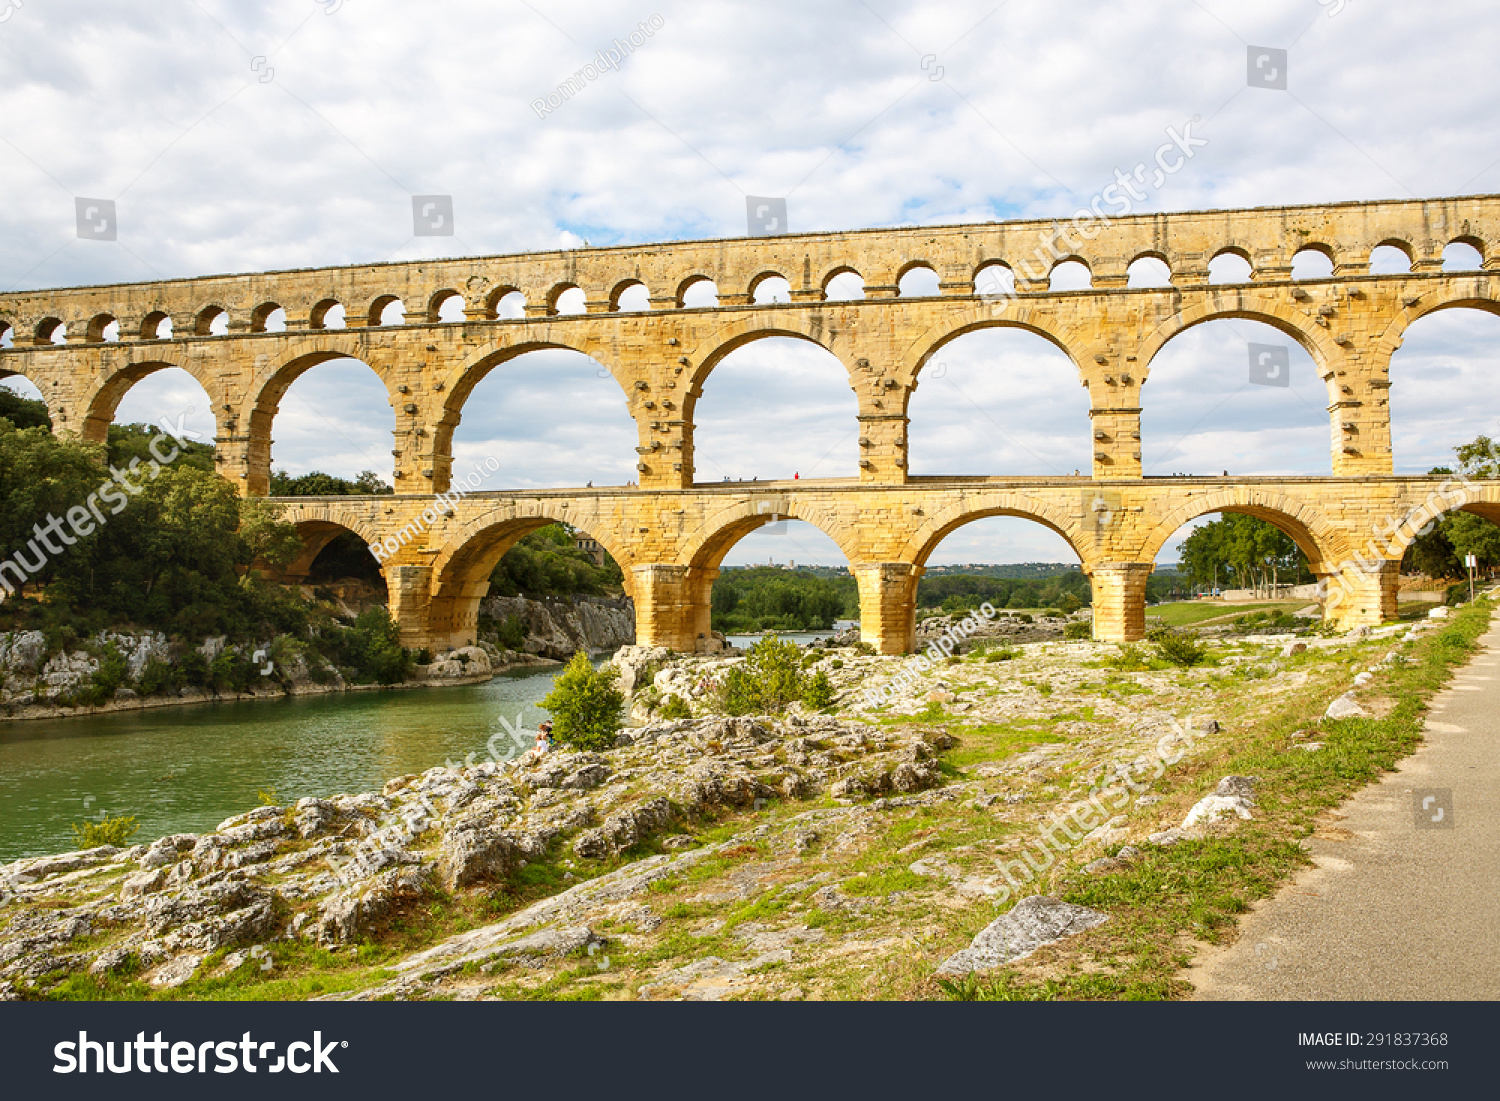 How Old Is The Aqueduct At Nimes 114